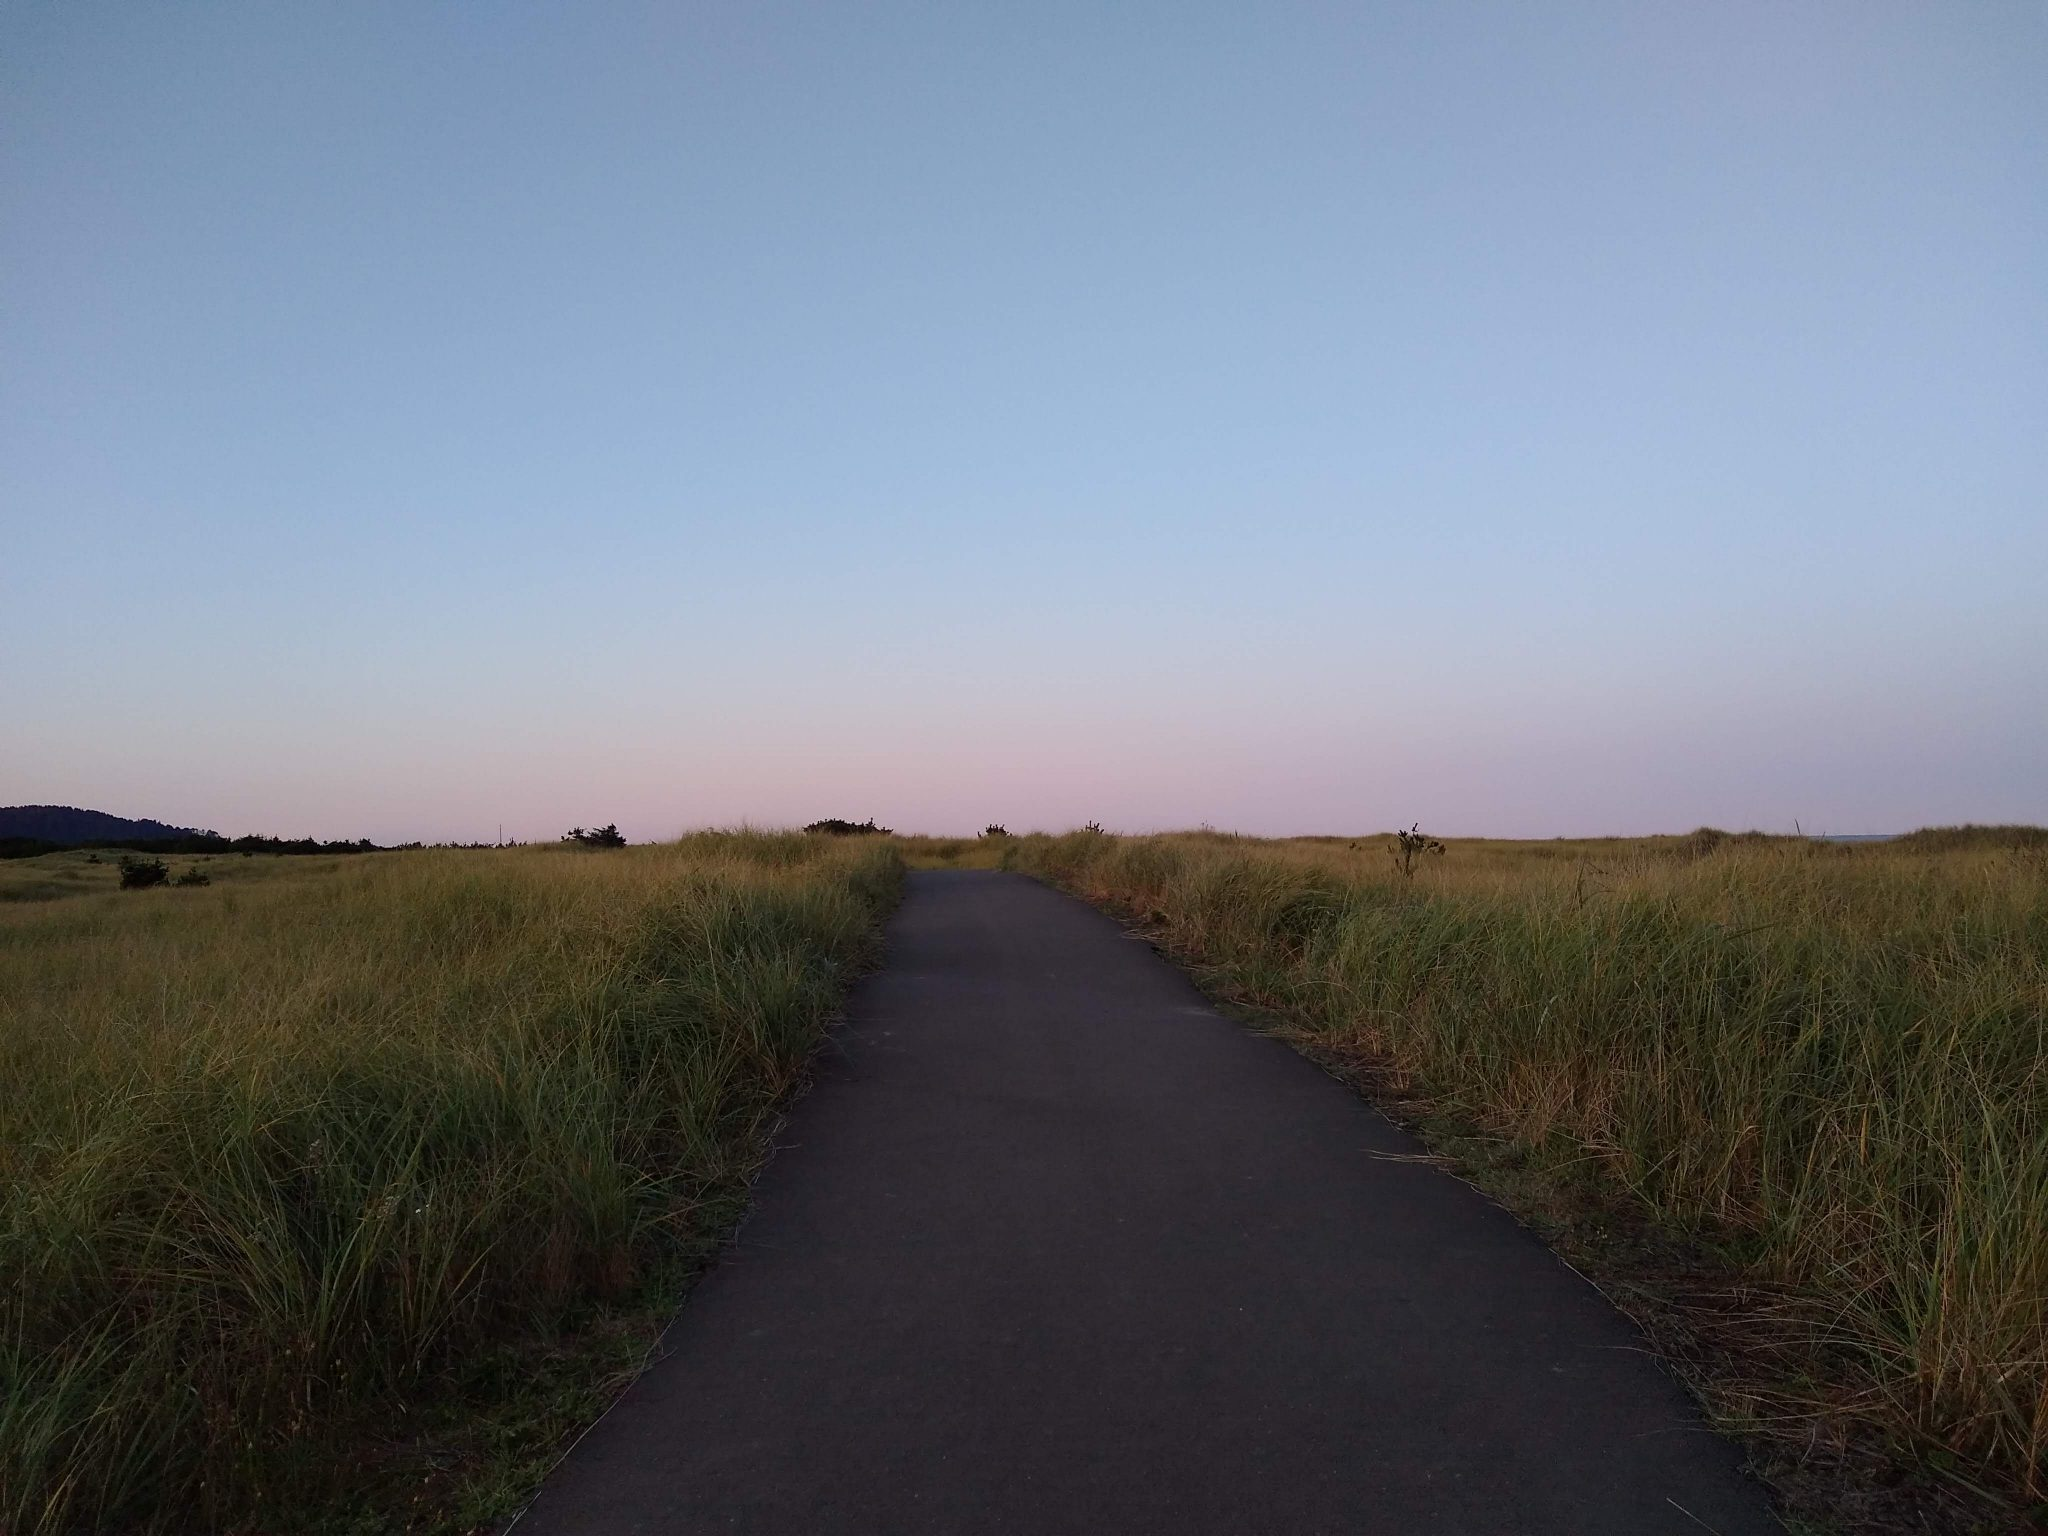 A paved trail in the middle of the photo goes through tall grasses on each side at sunrise